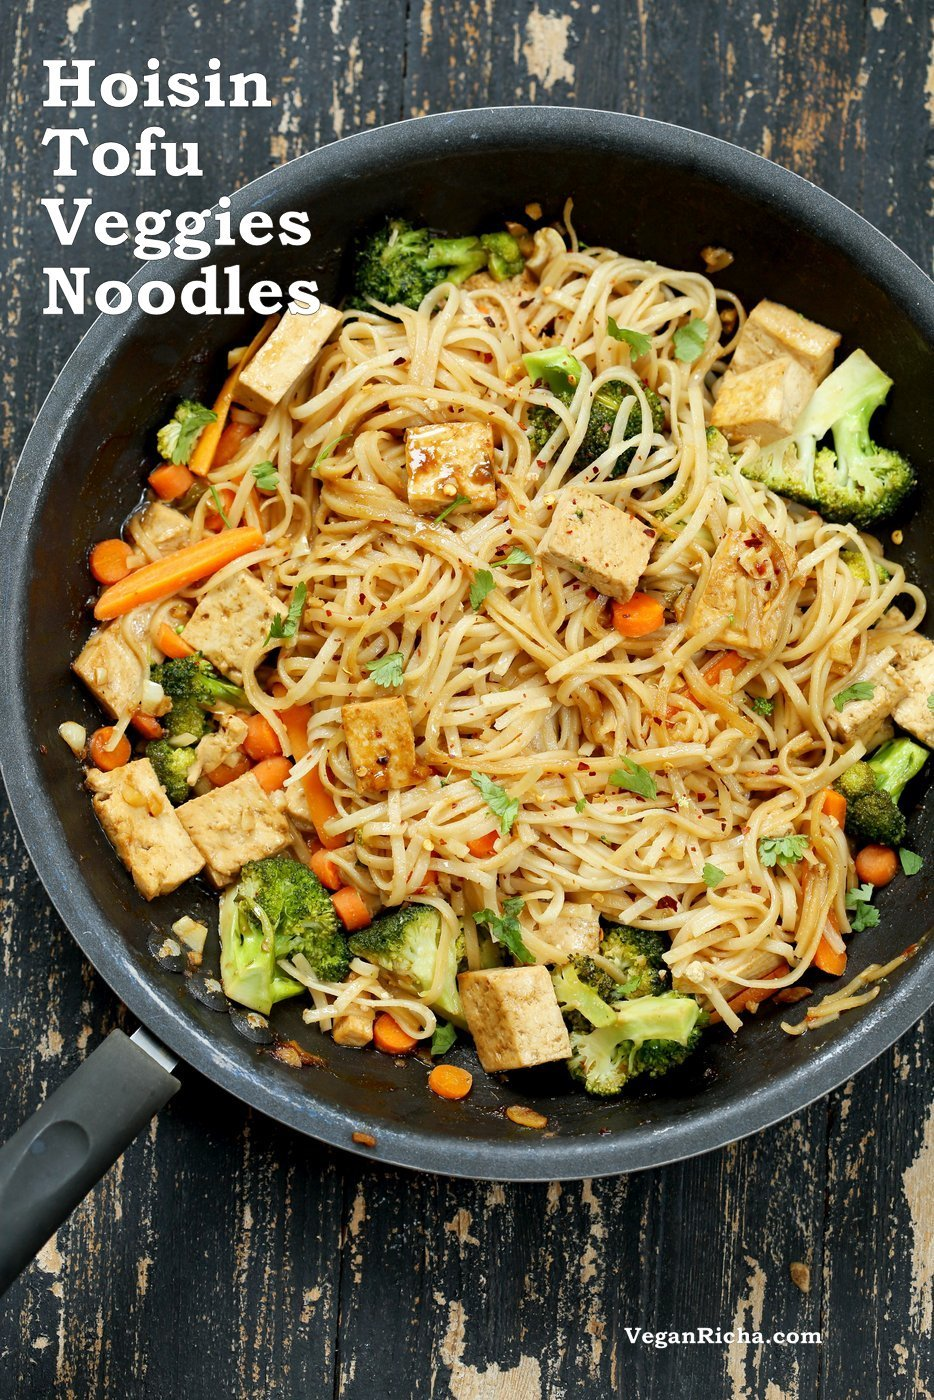 Tofu And Brown Rice Noodles In Hoisin Sauce Vegan Richa